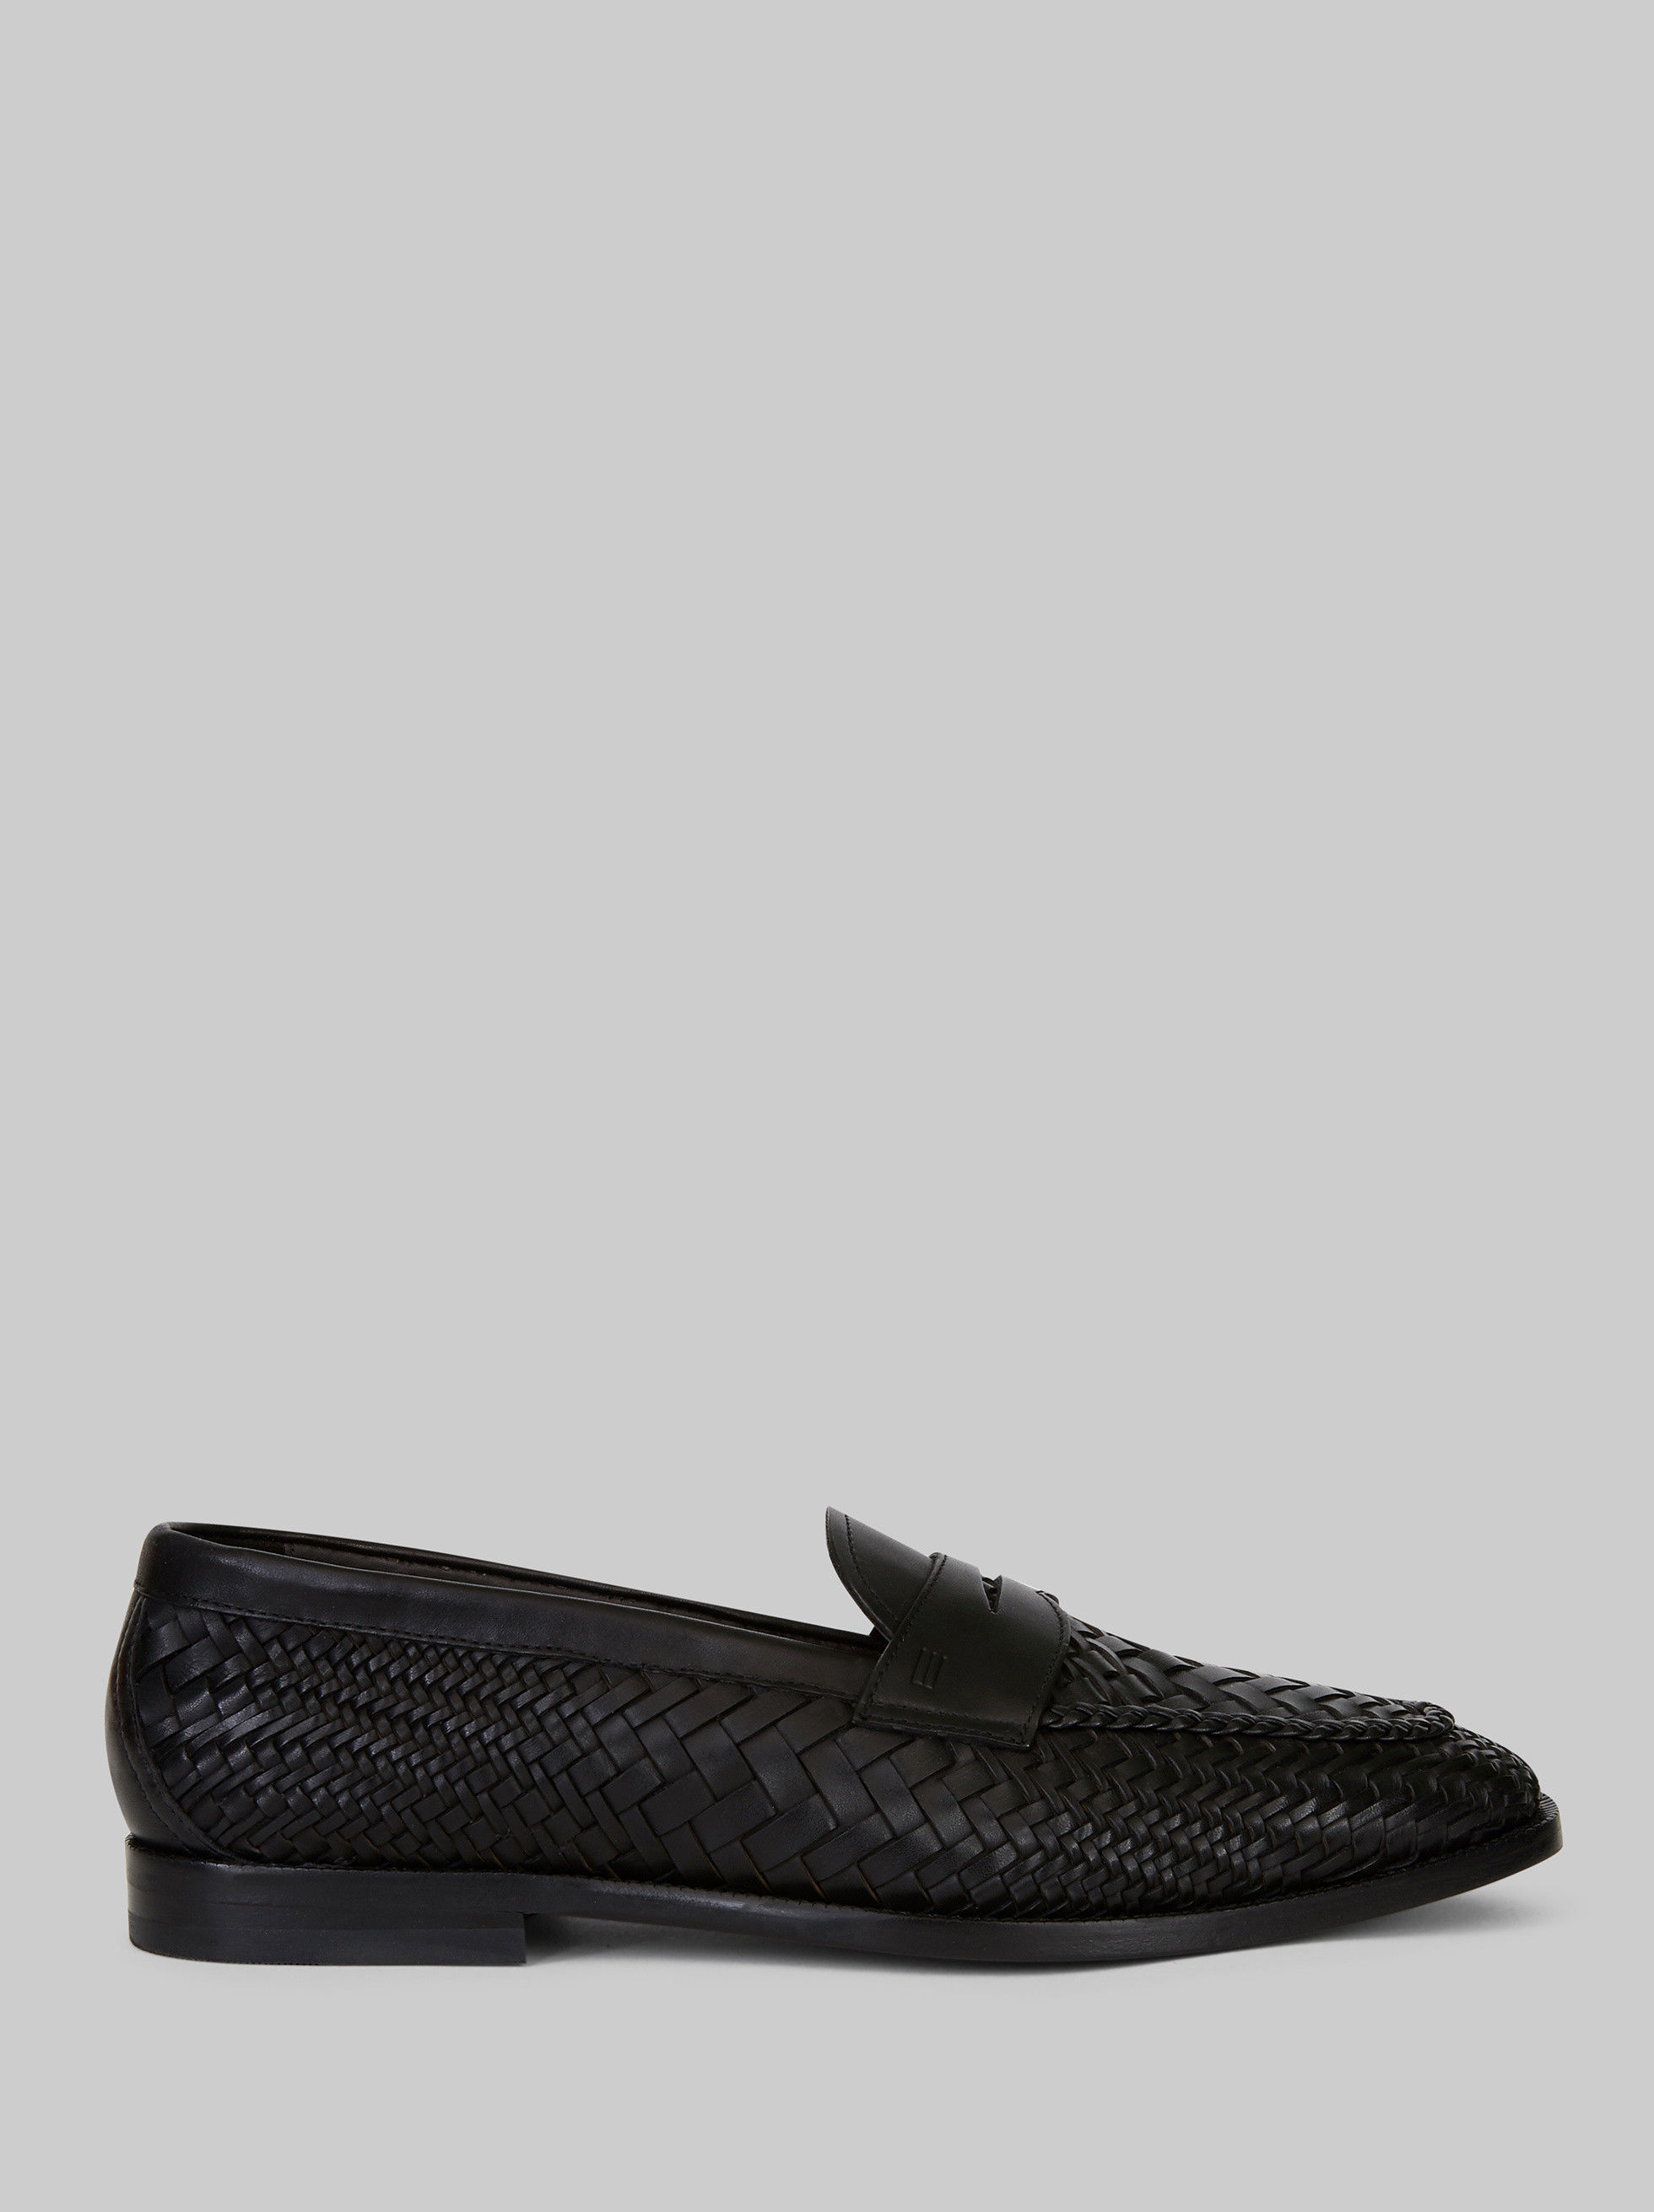 WOVEN LEATHER LOAFERS